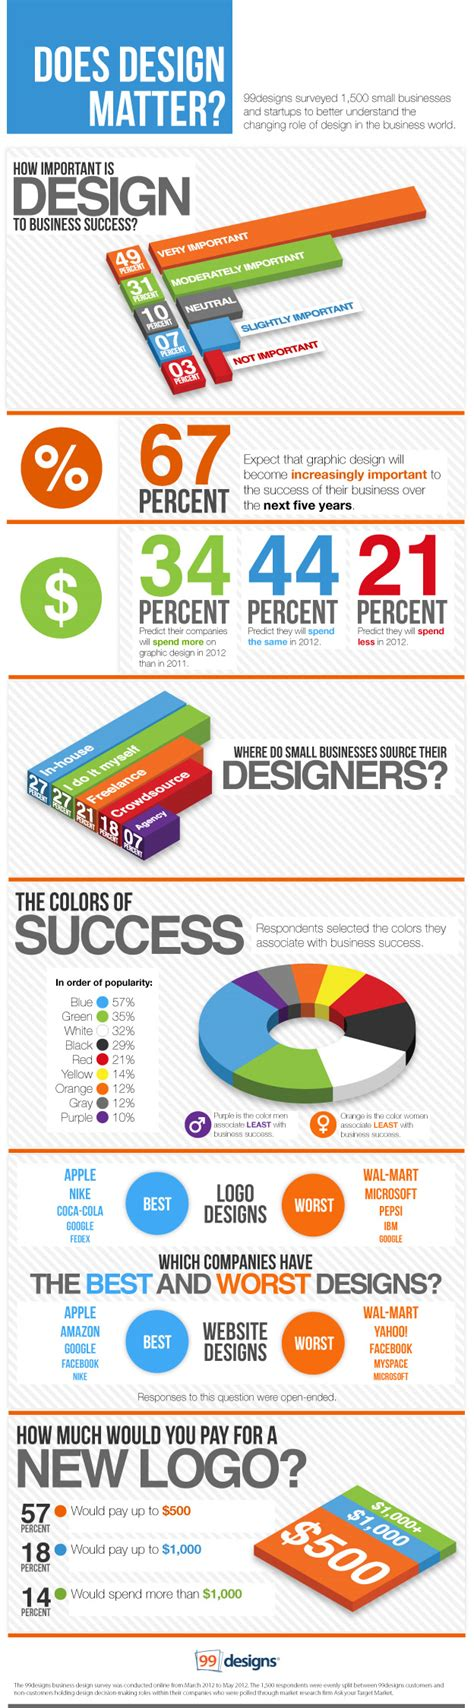 graphics design qualifications what web design qualifications are needed in the market